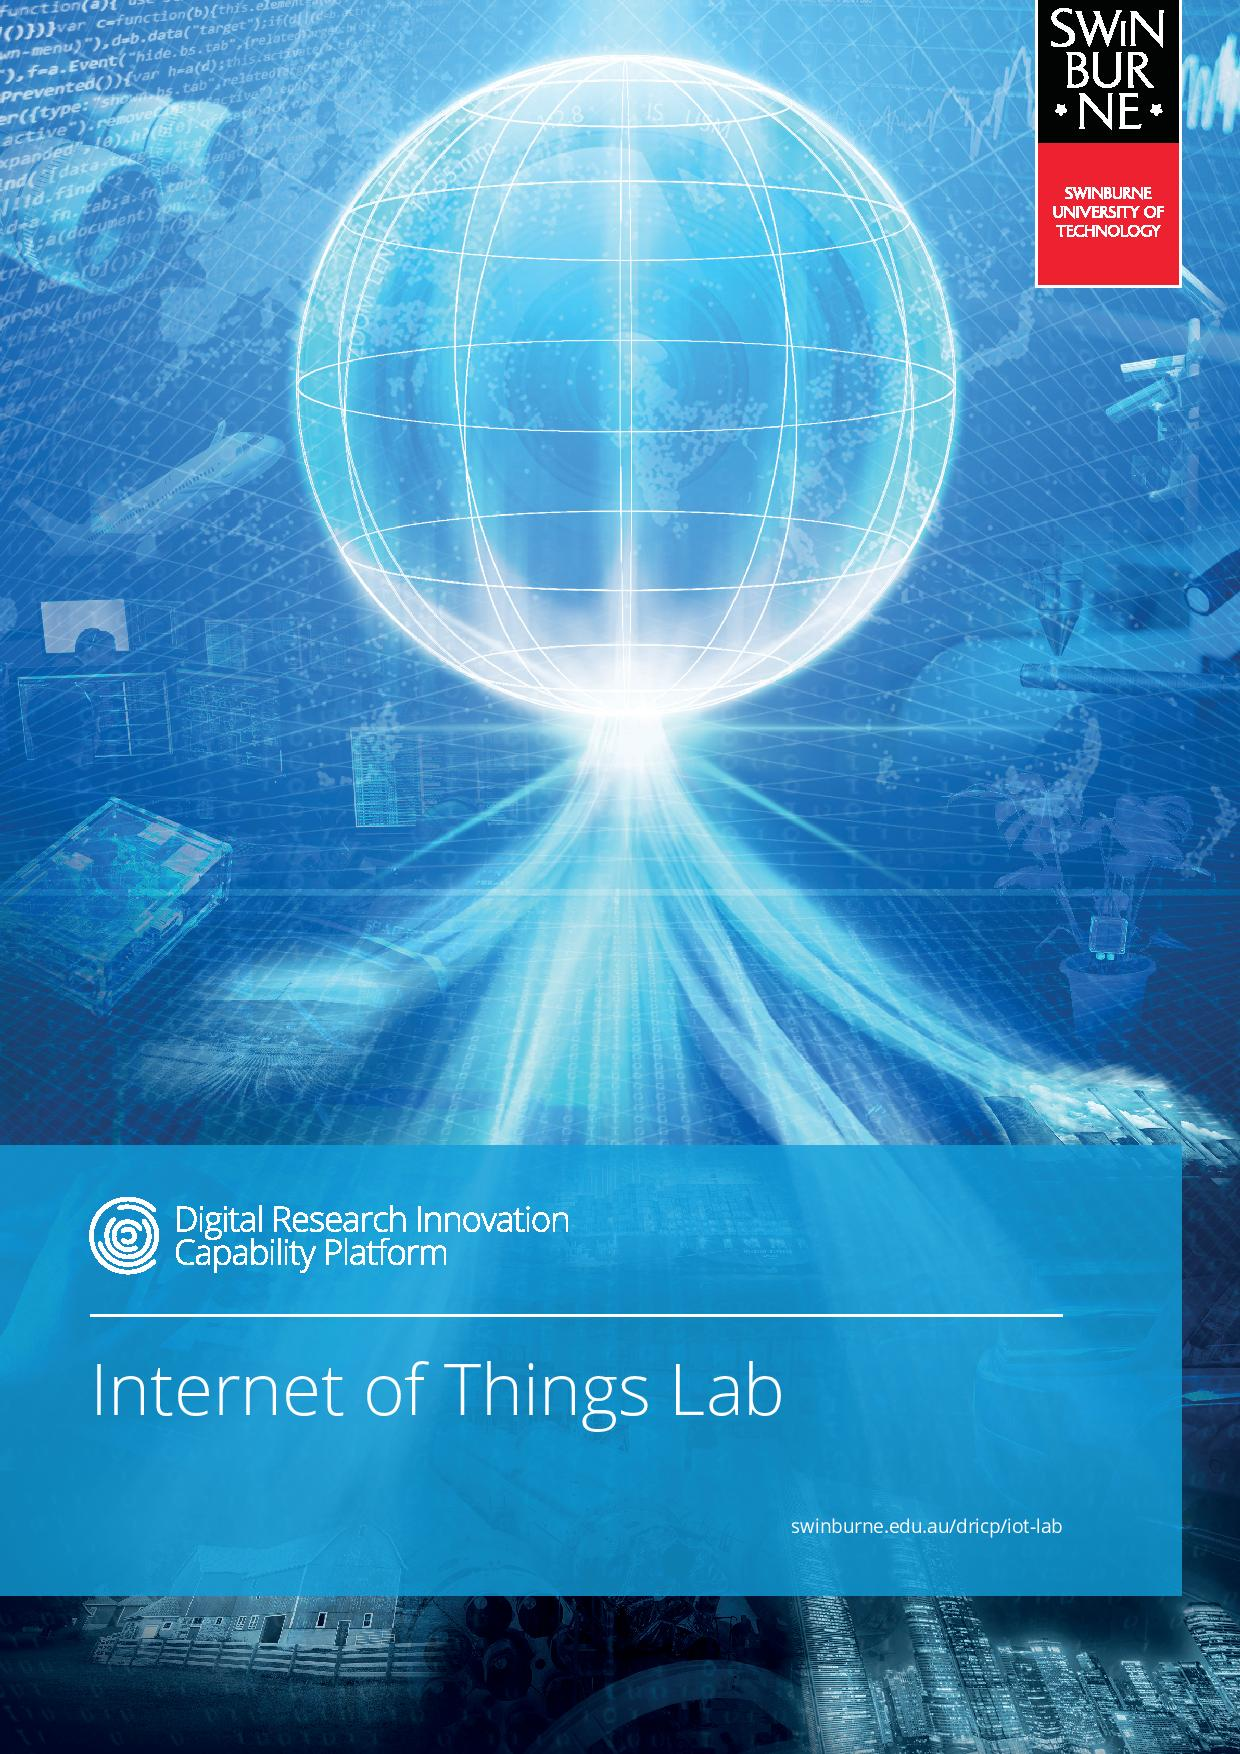 The Internet of Things (IoT) Lab